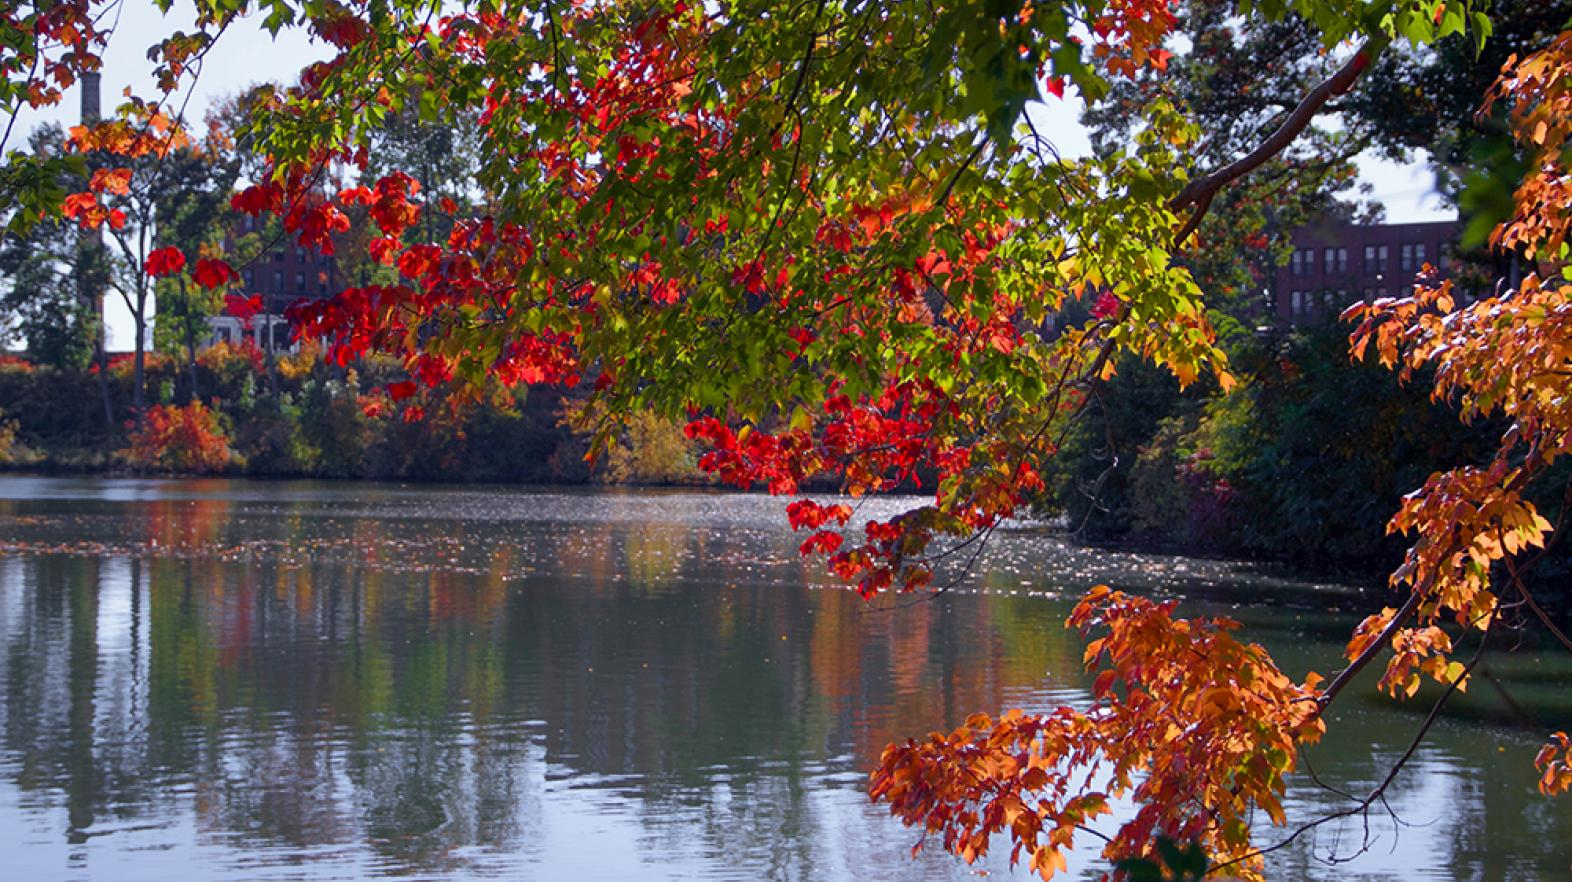 Fall foliage over Lake Massasoit during the fall 2016 semester at Springfield College